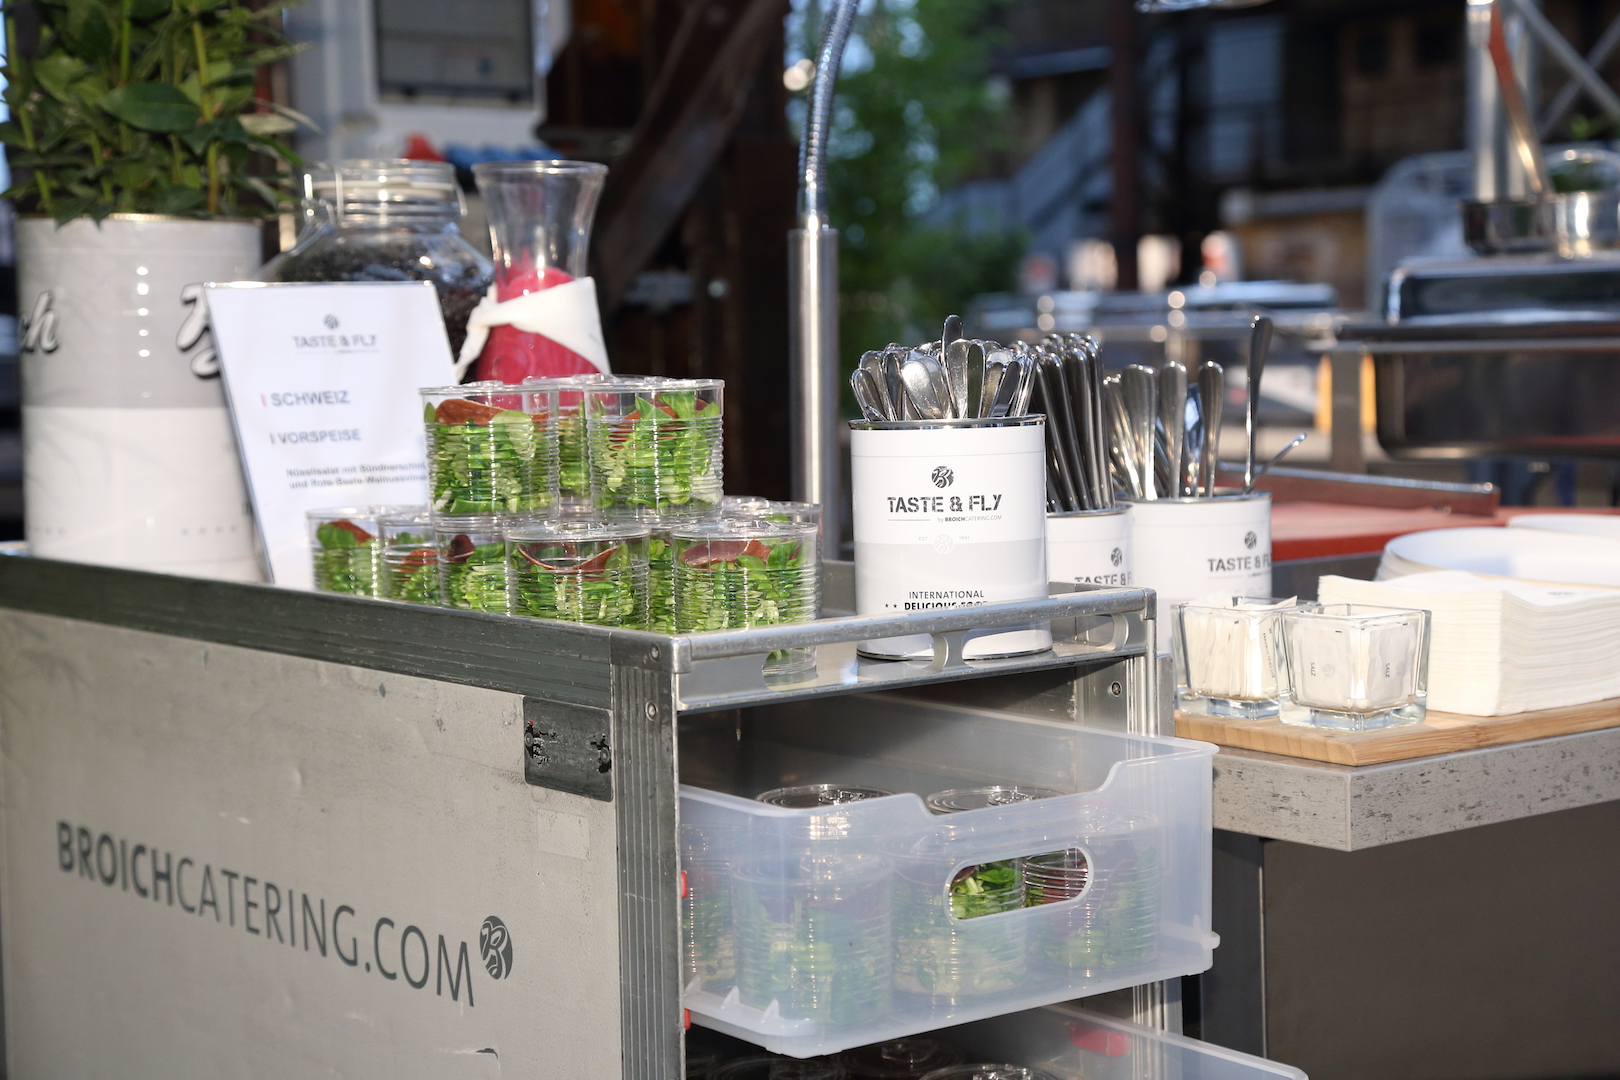 Broich Catering Locations_Taste and fly_event-catering-foodkonzept_foodstation